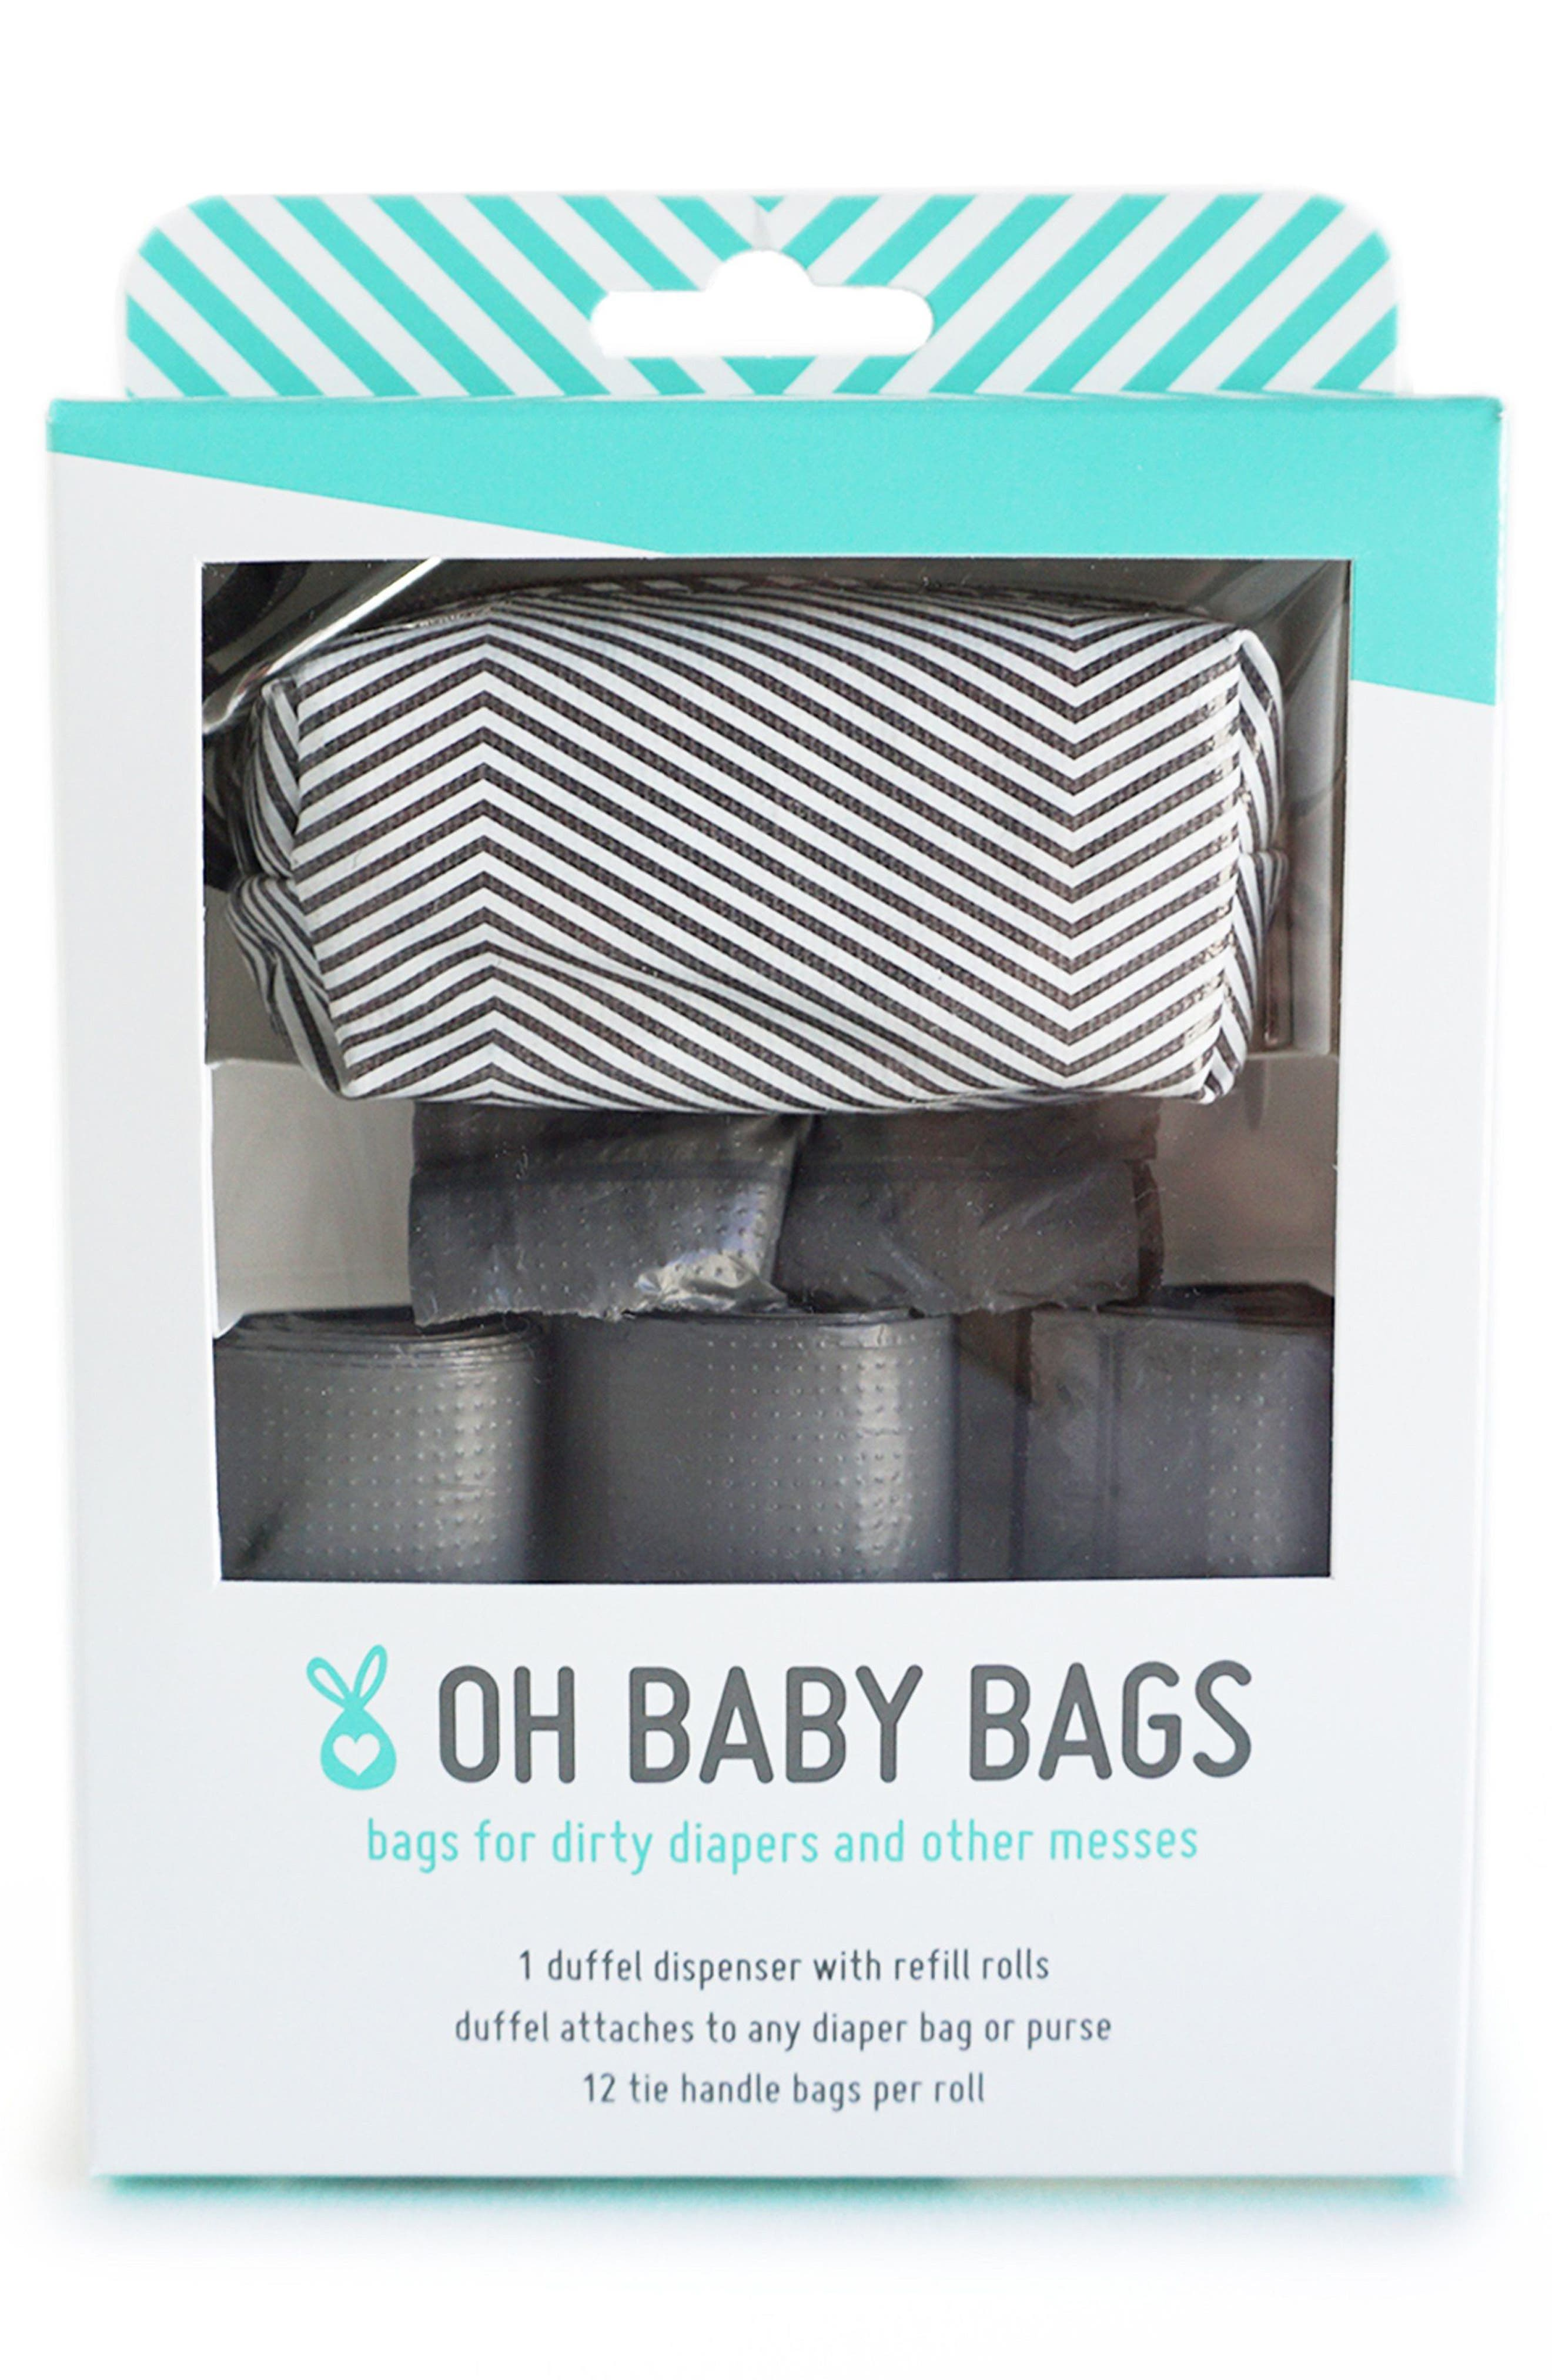 Oh Baby Bags Portable Clip-On Dispenser with Bags